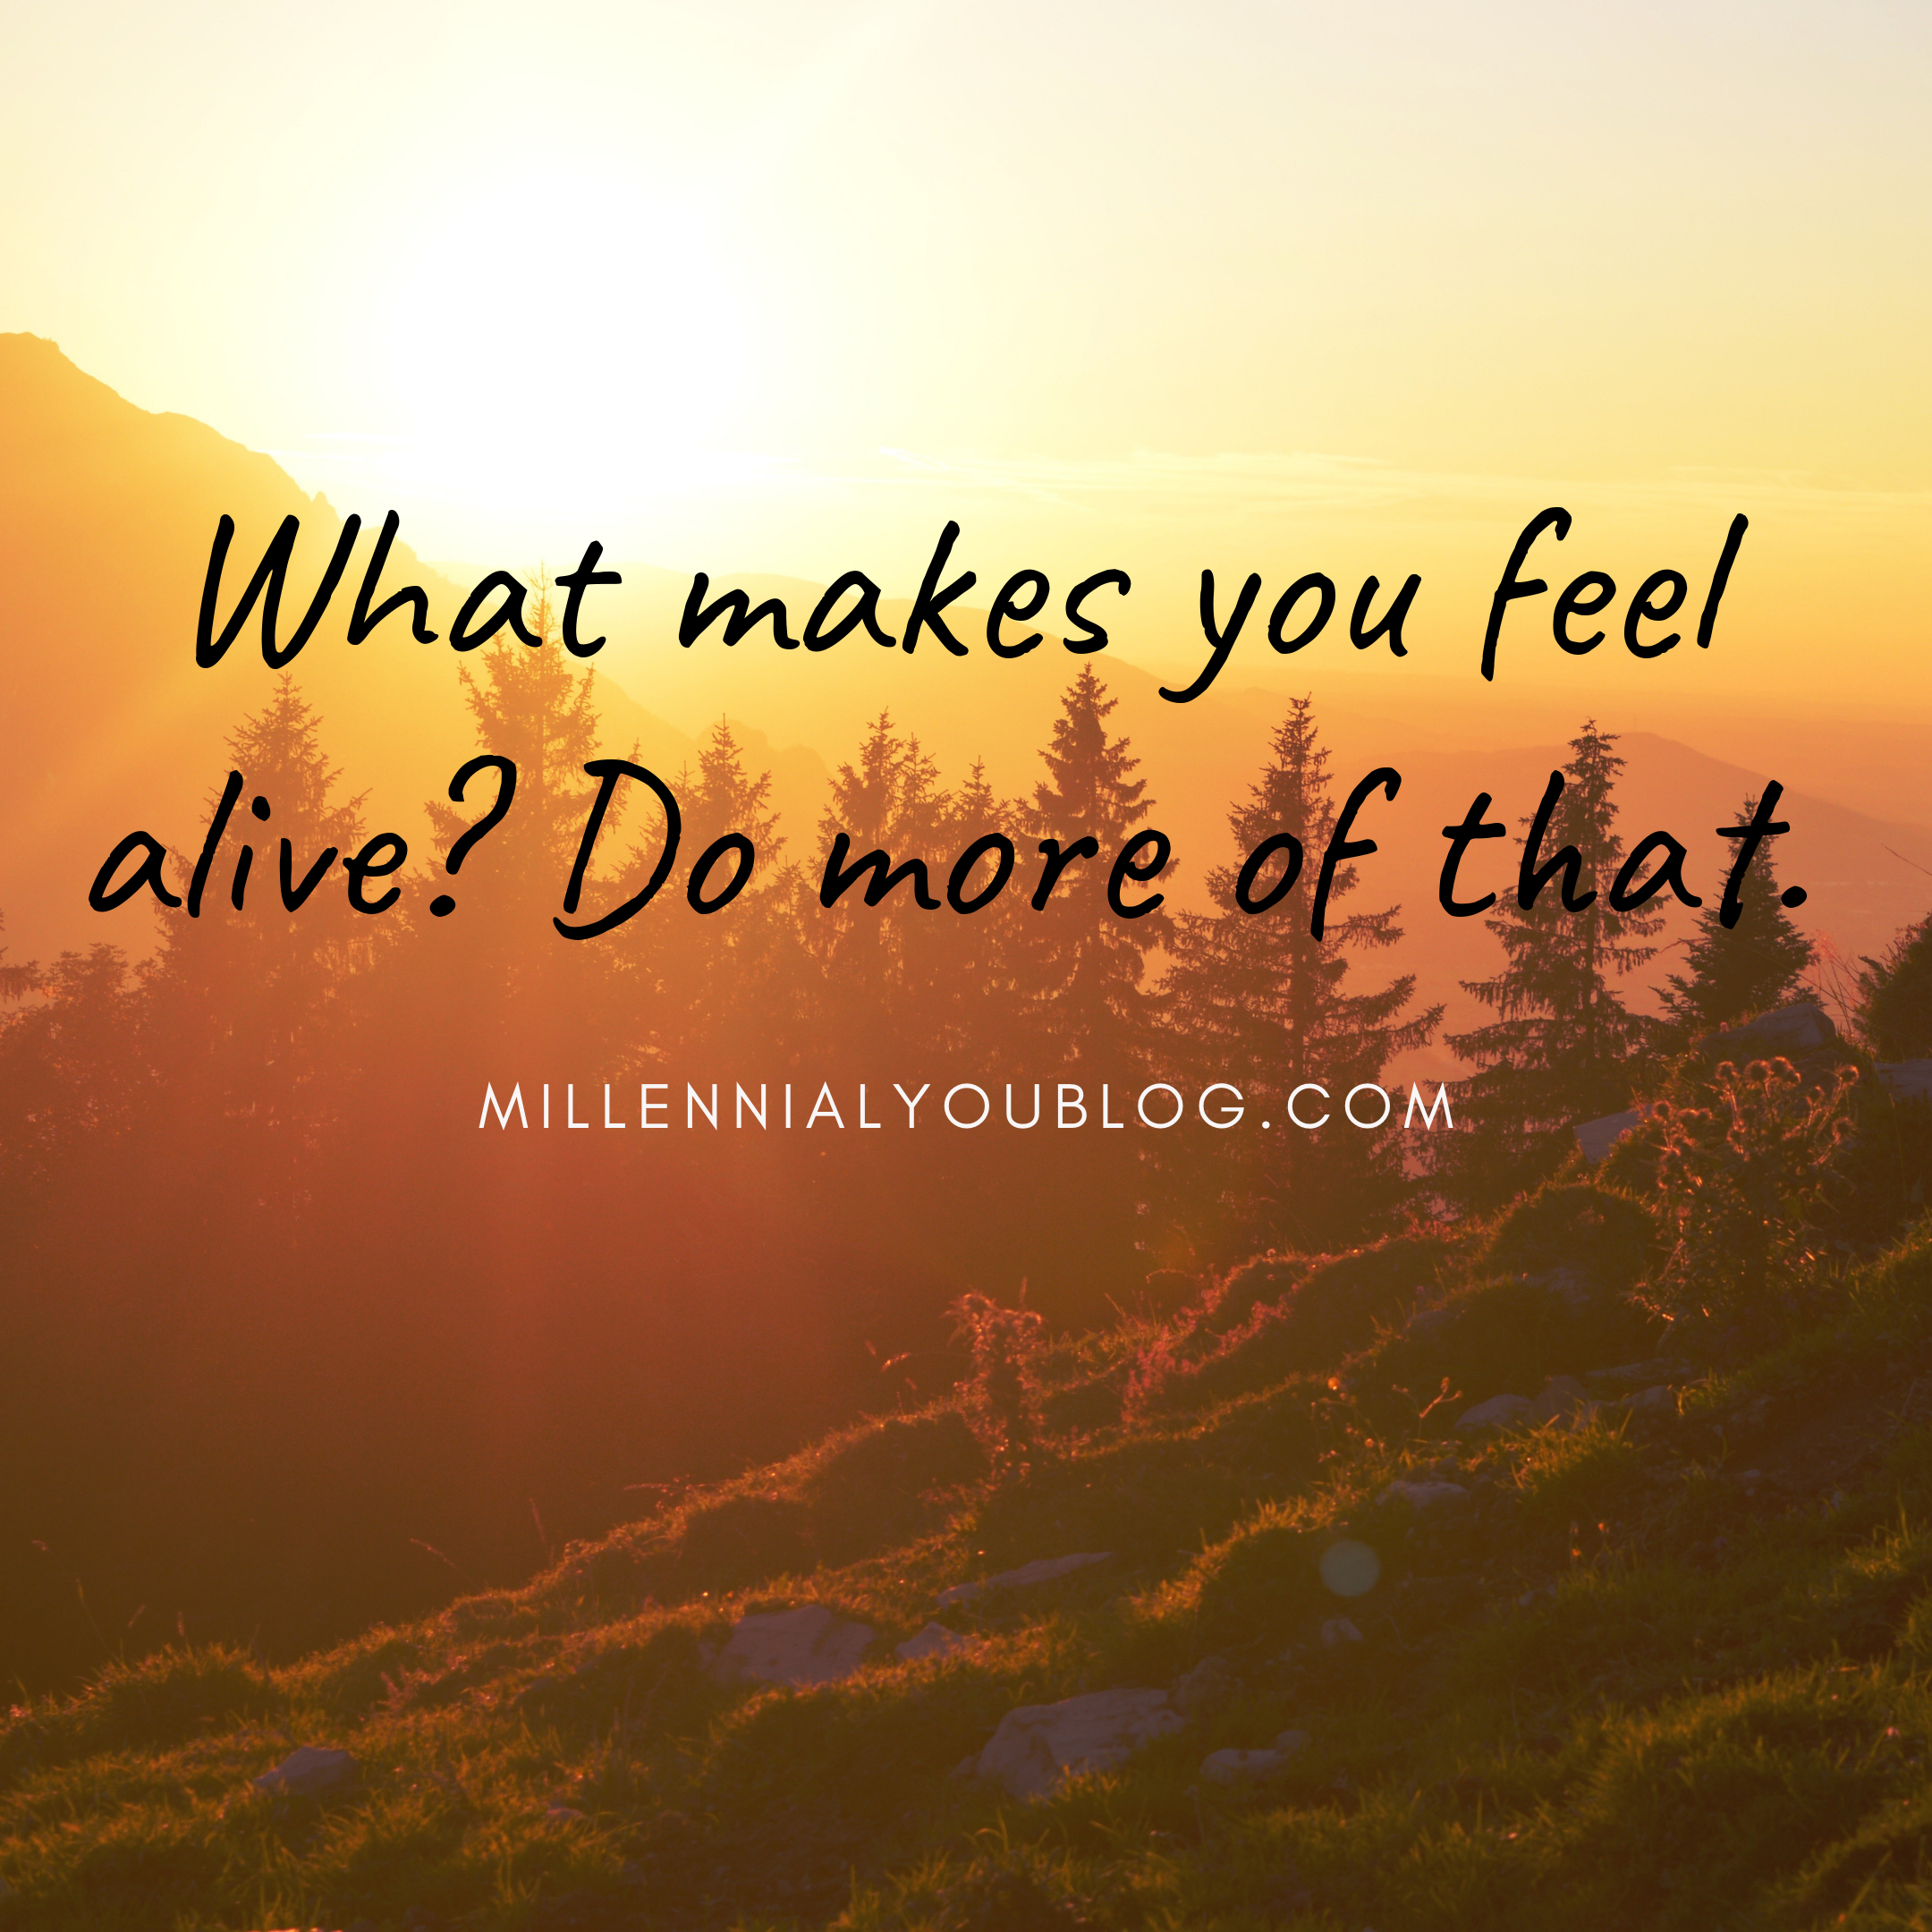 What makes you feel alive Inspirational quotes, Feelings